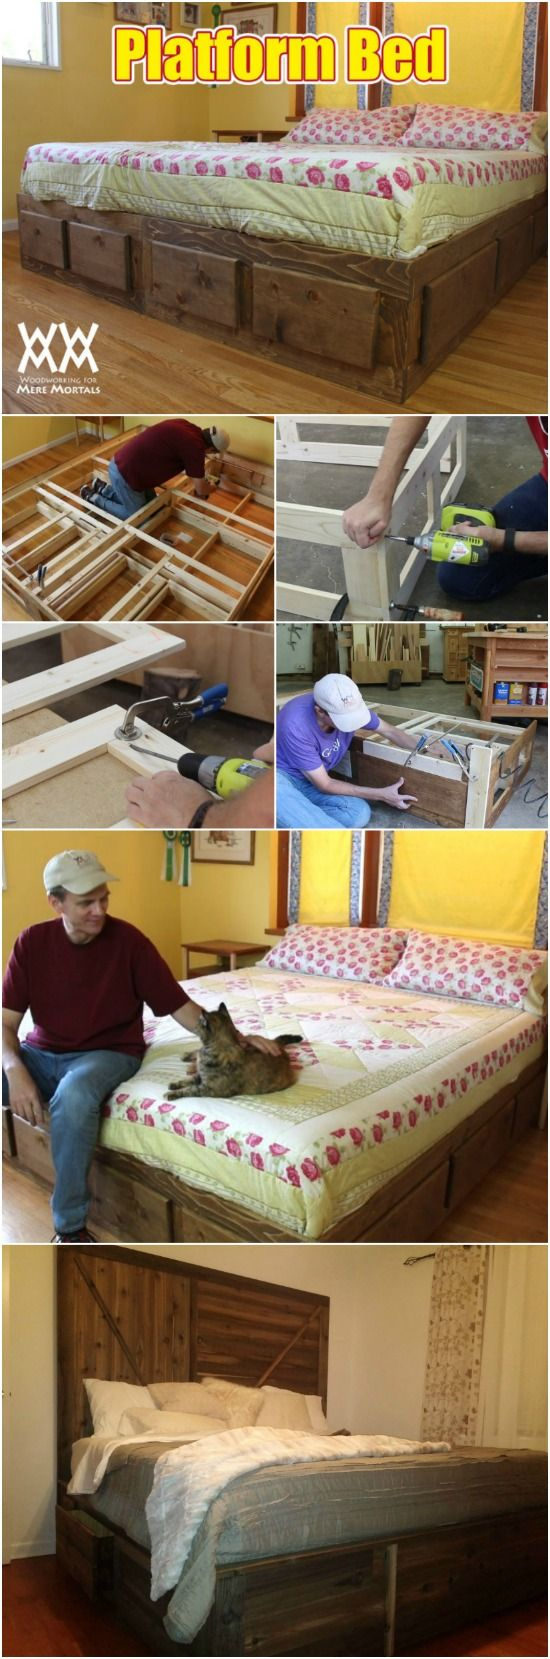 How to build a king size bed with extra storage underneath free